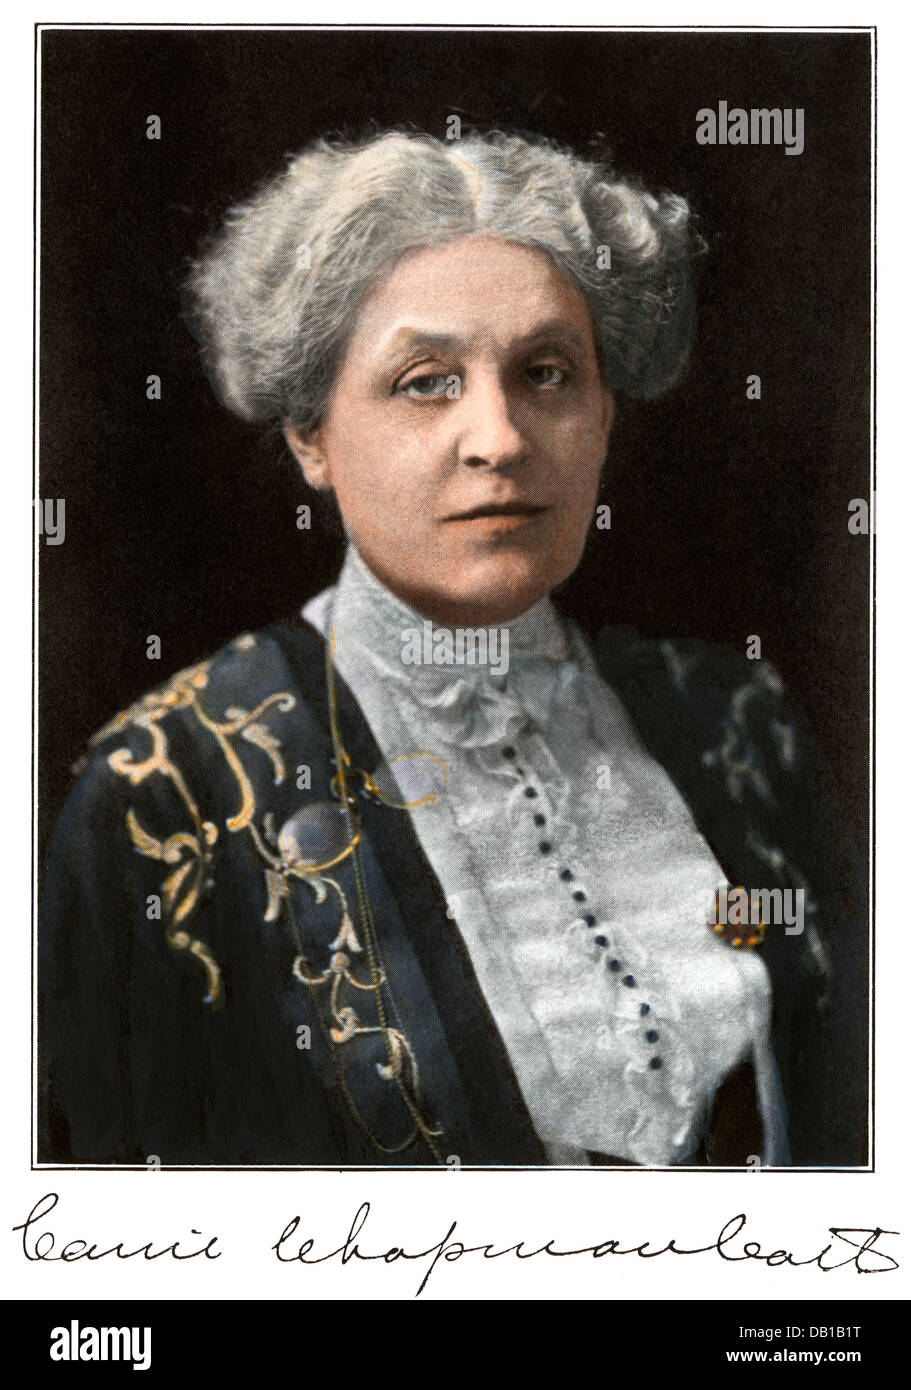 Women's suffrage proponent Carrie Chapman Catt. Hand-colored halftone of a photograph - Stock Image